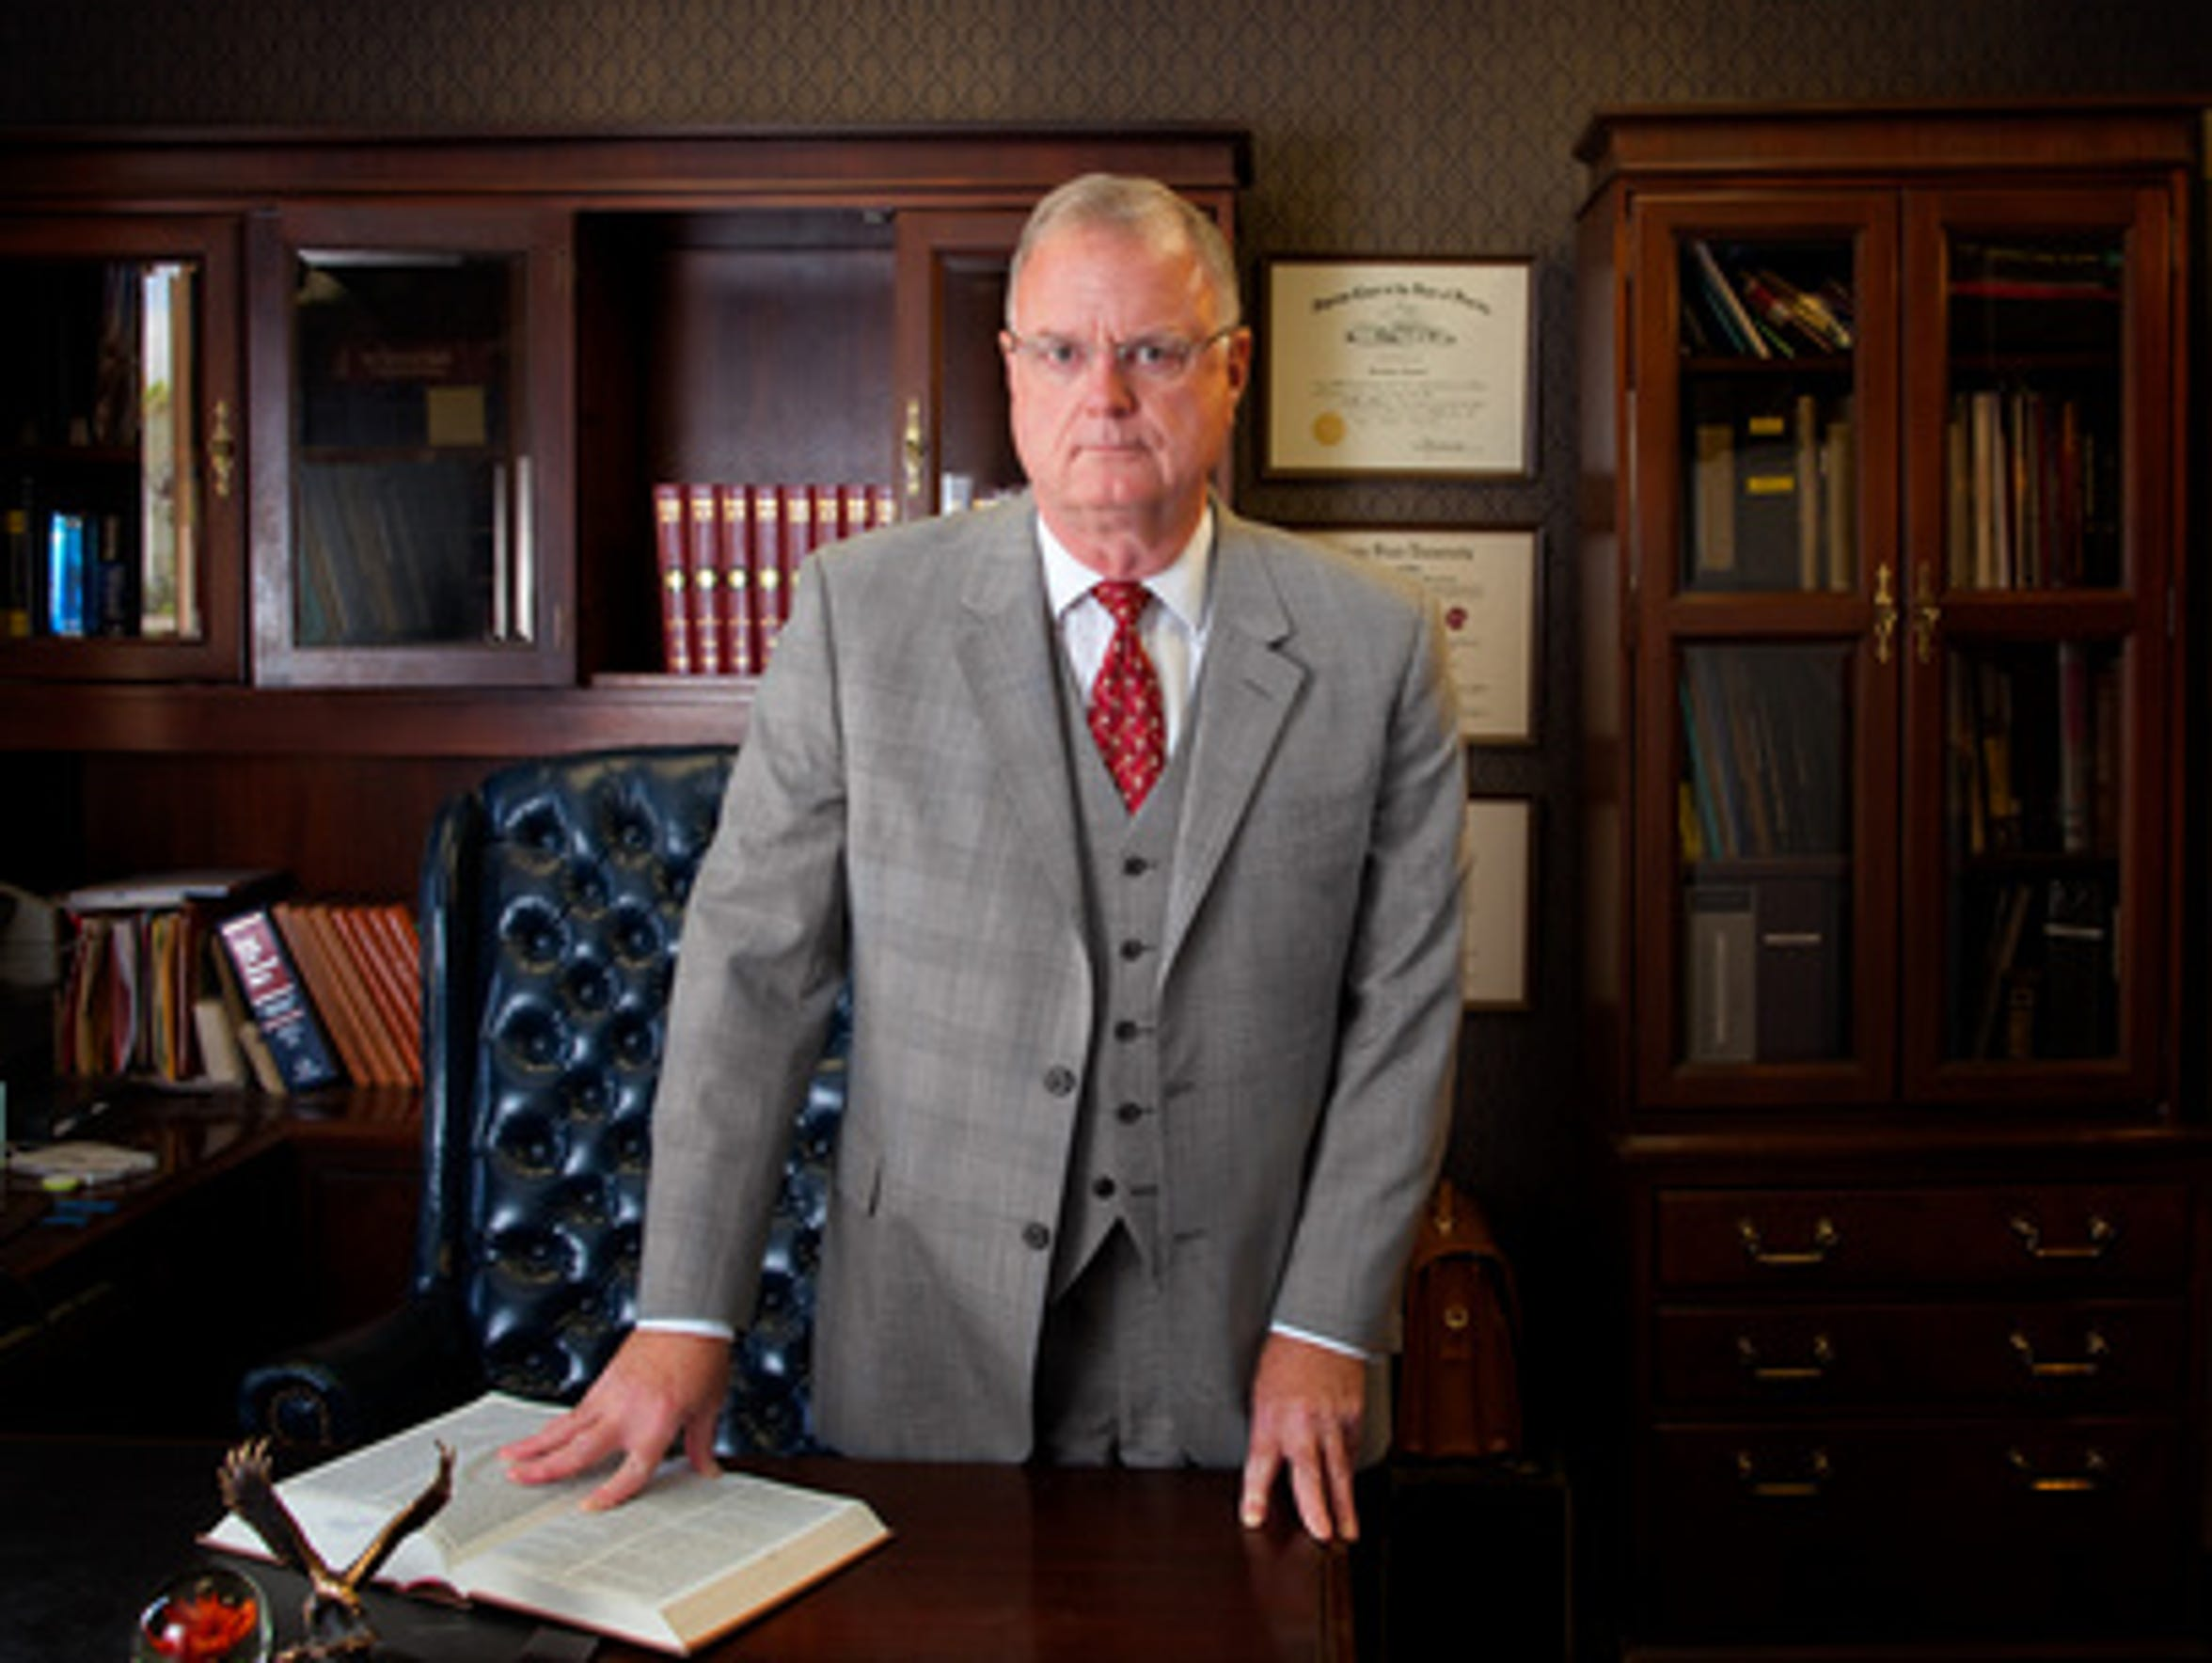 Criminal defense attorney Sam Bardwell quit the prosecutor's